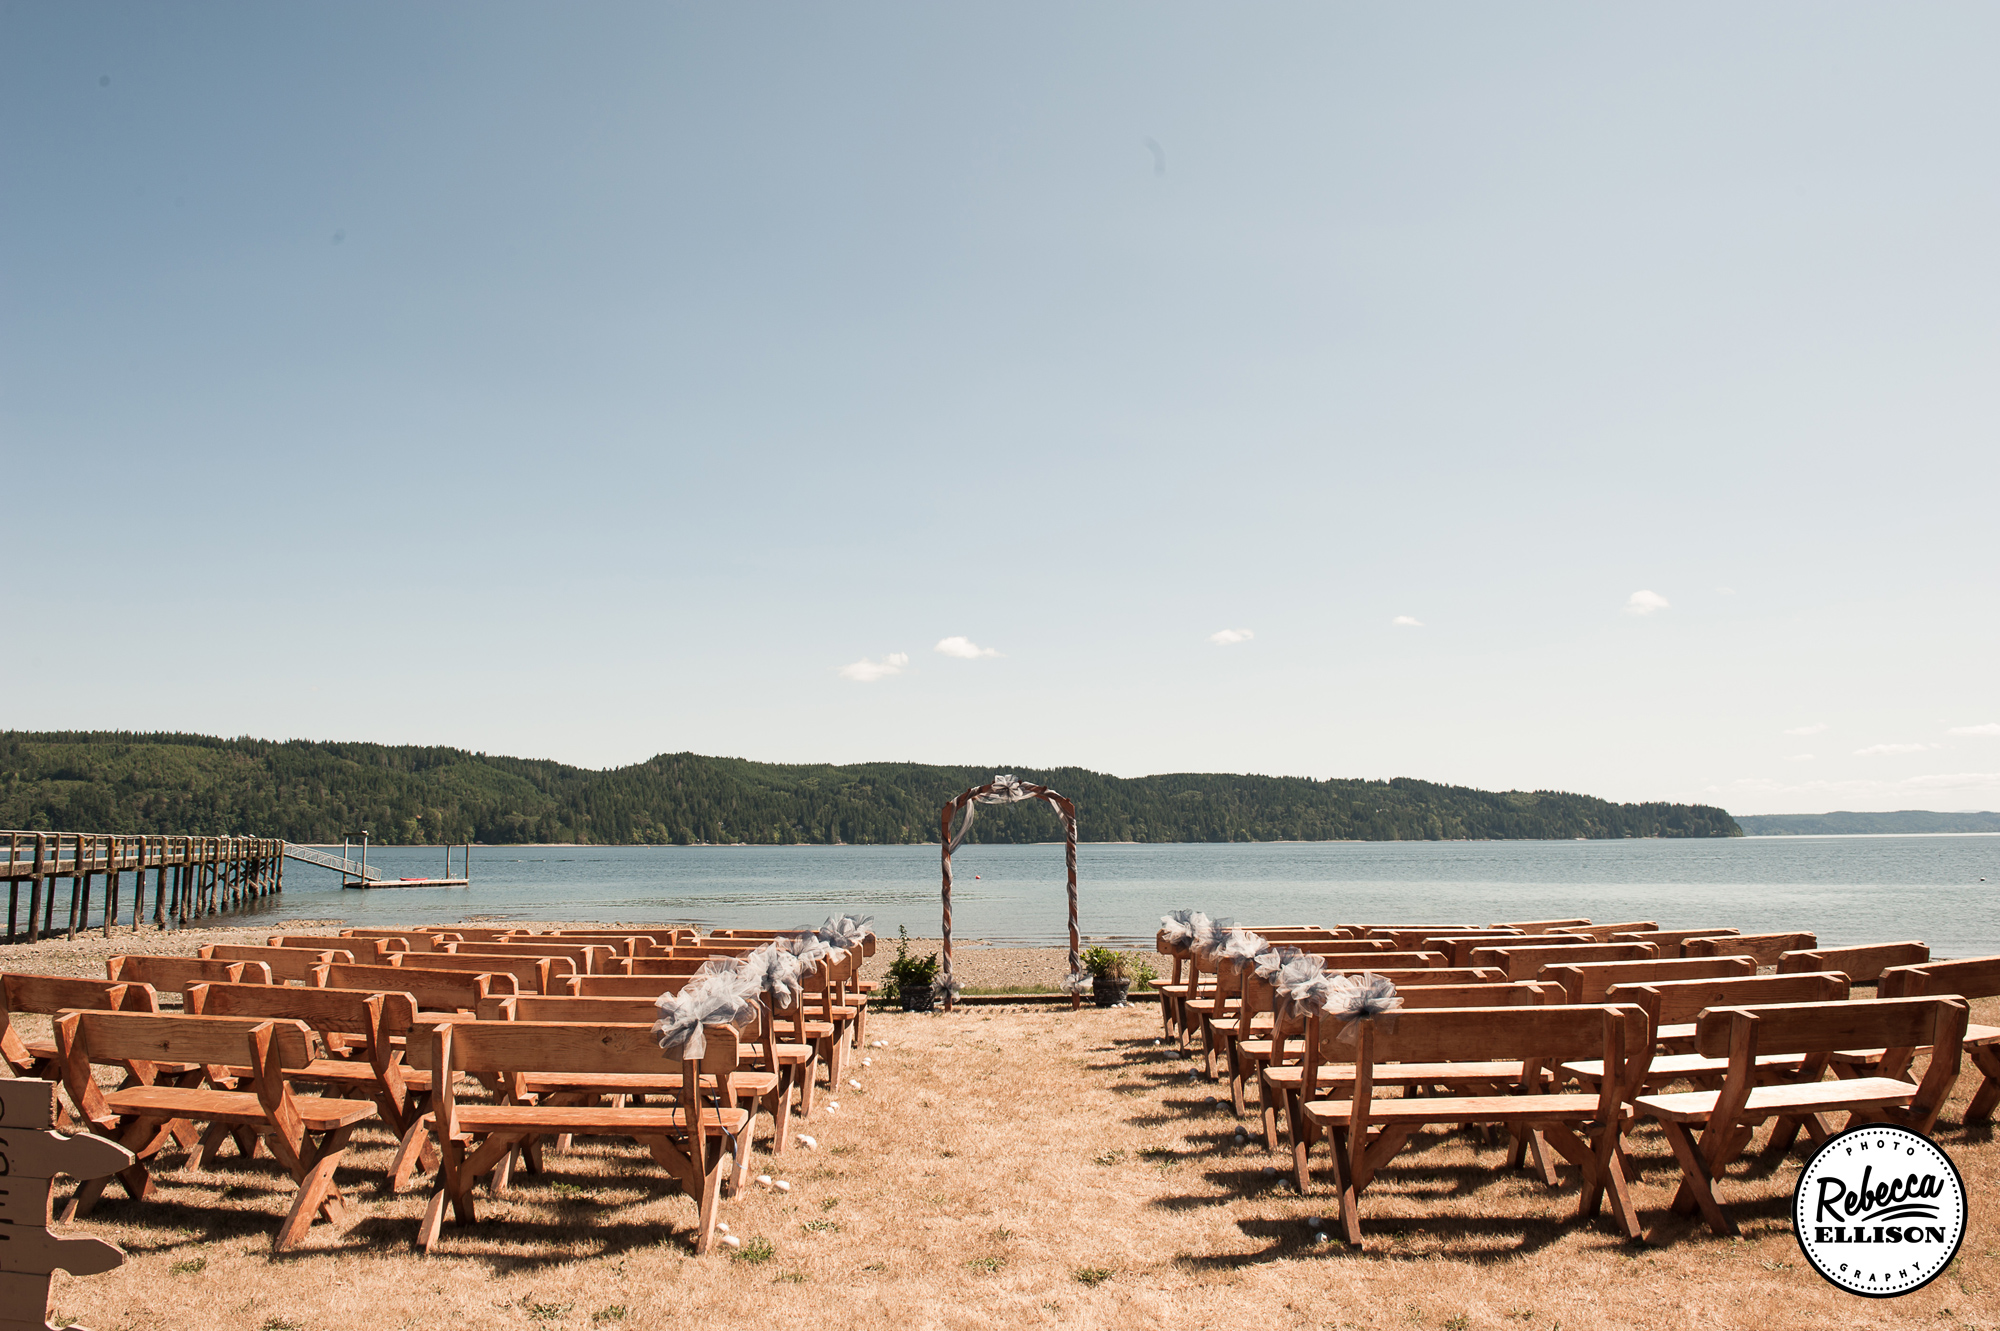 Hoodsport Beach Club wedding venue featuring a sandy beach, wooden benches and an archway overlooking the water